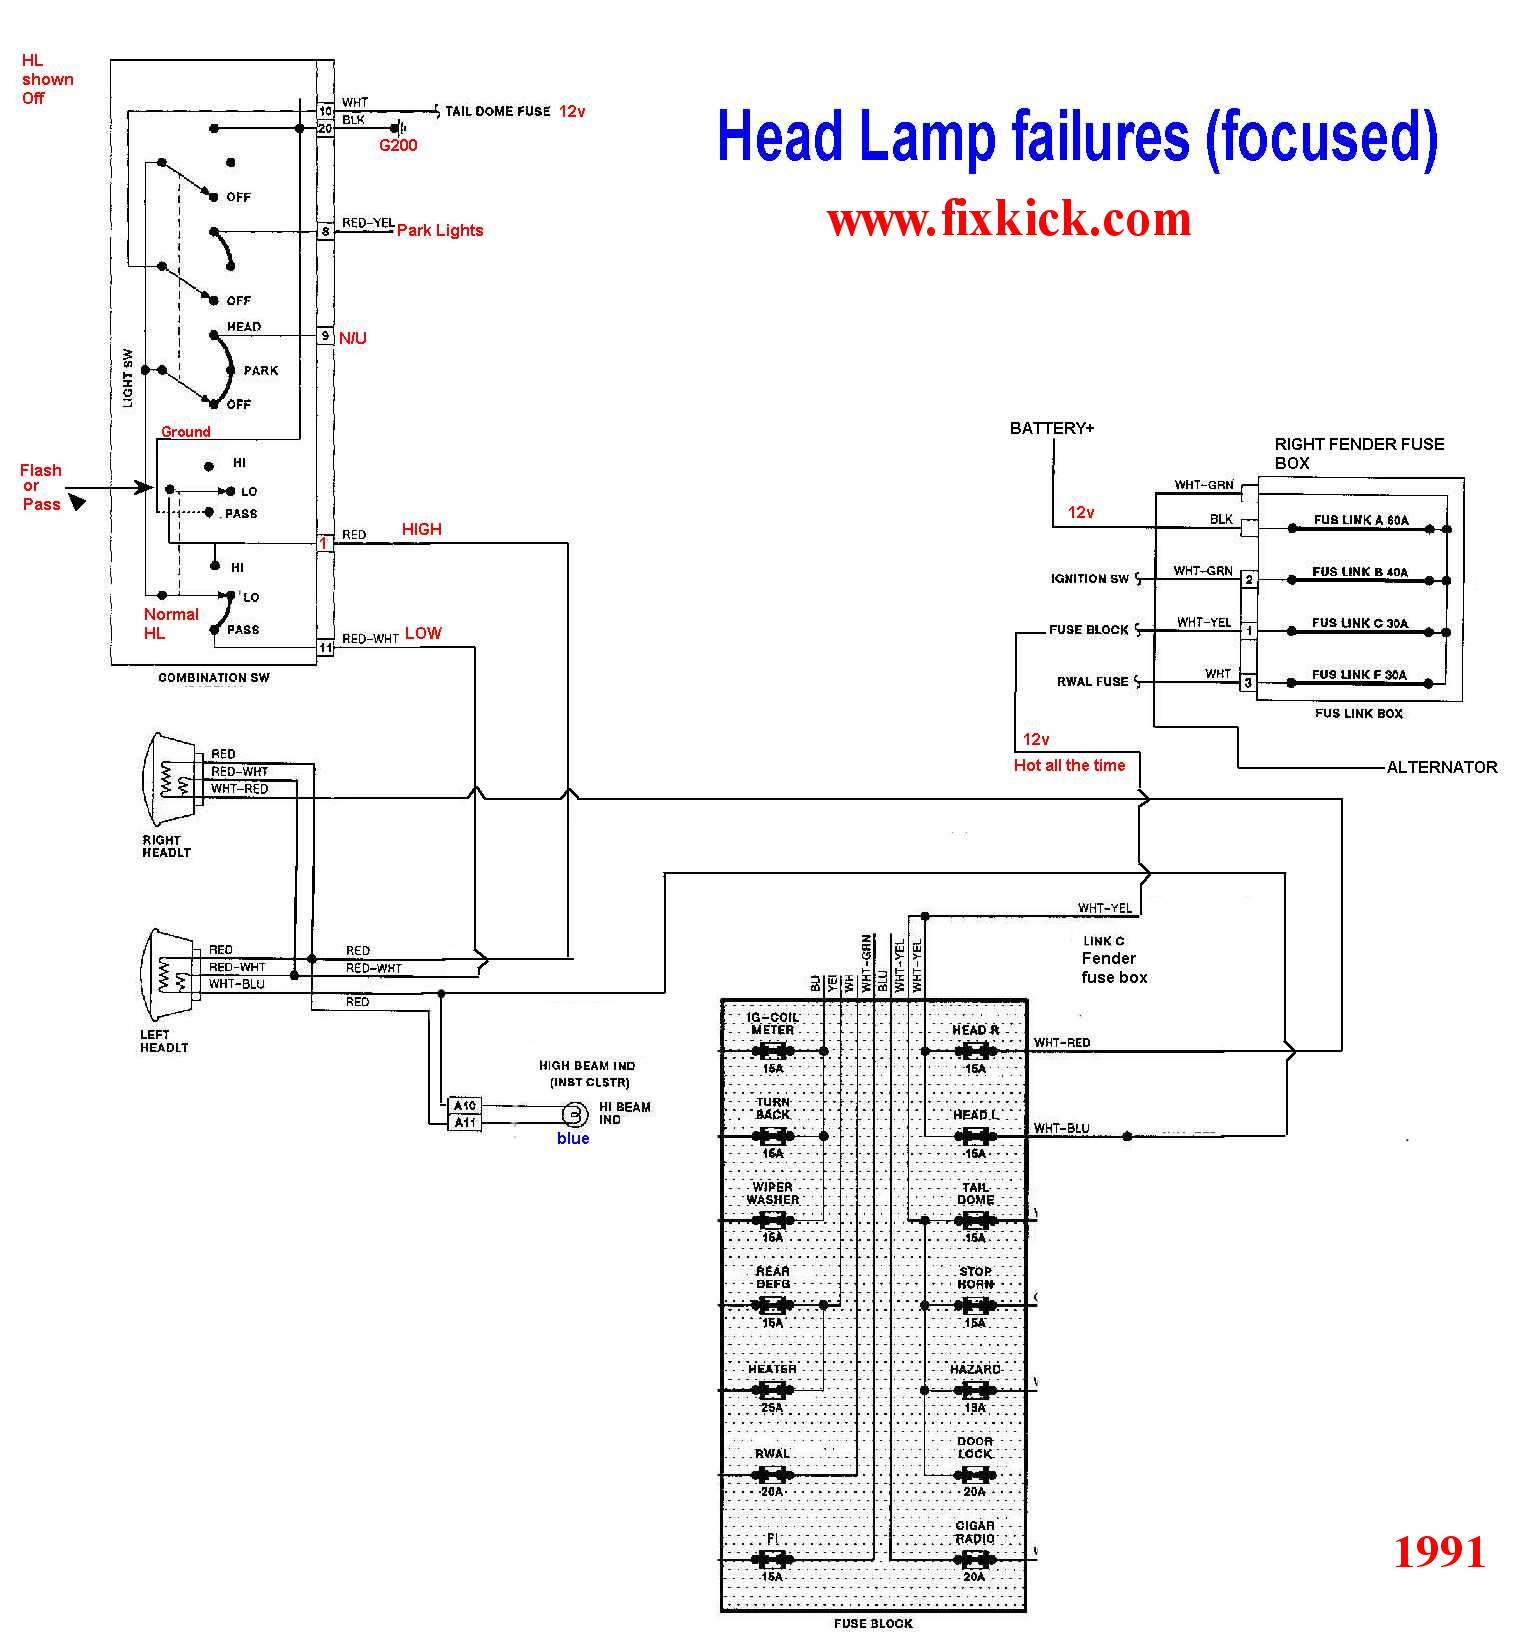 1995 Chevy Impala Ss Ignition Wiring Diagram Picture Distributor Headlight The 1991 Unified Head Light Schematic I Made